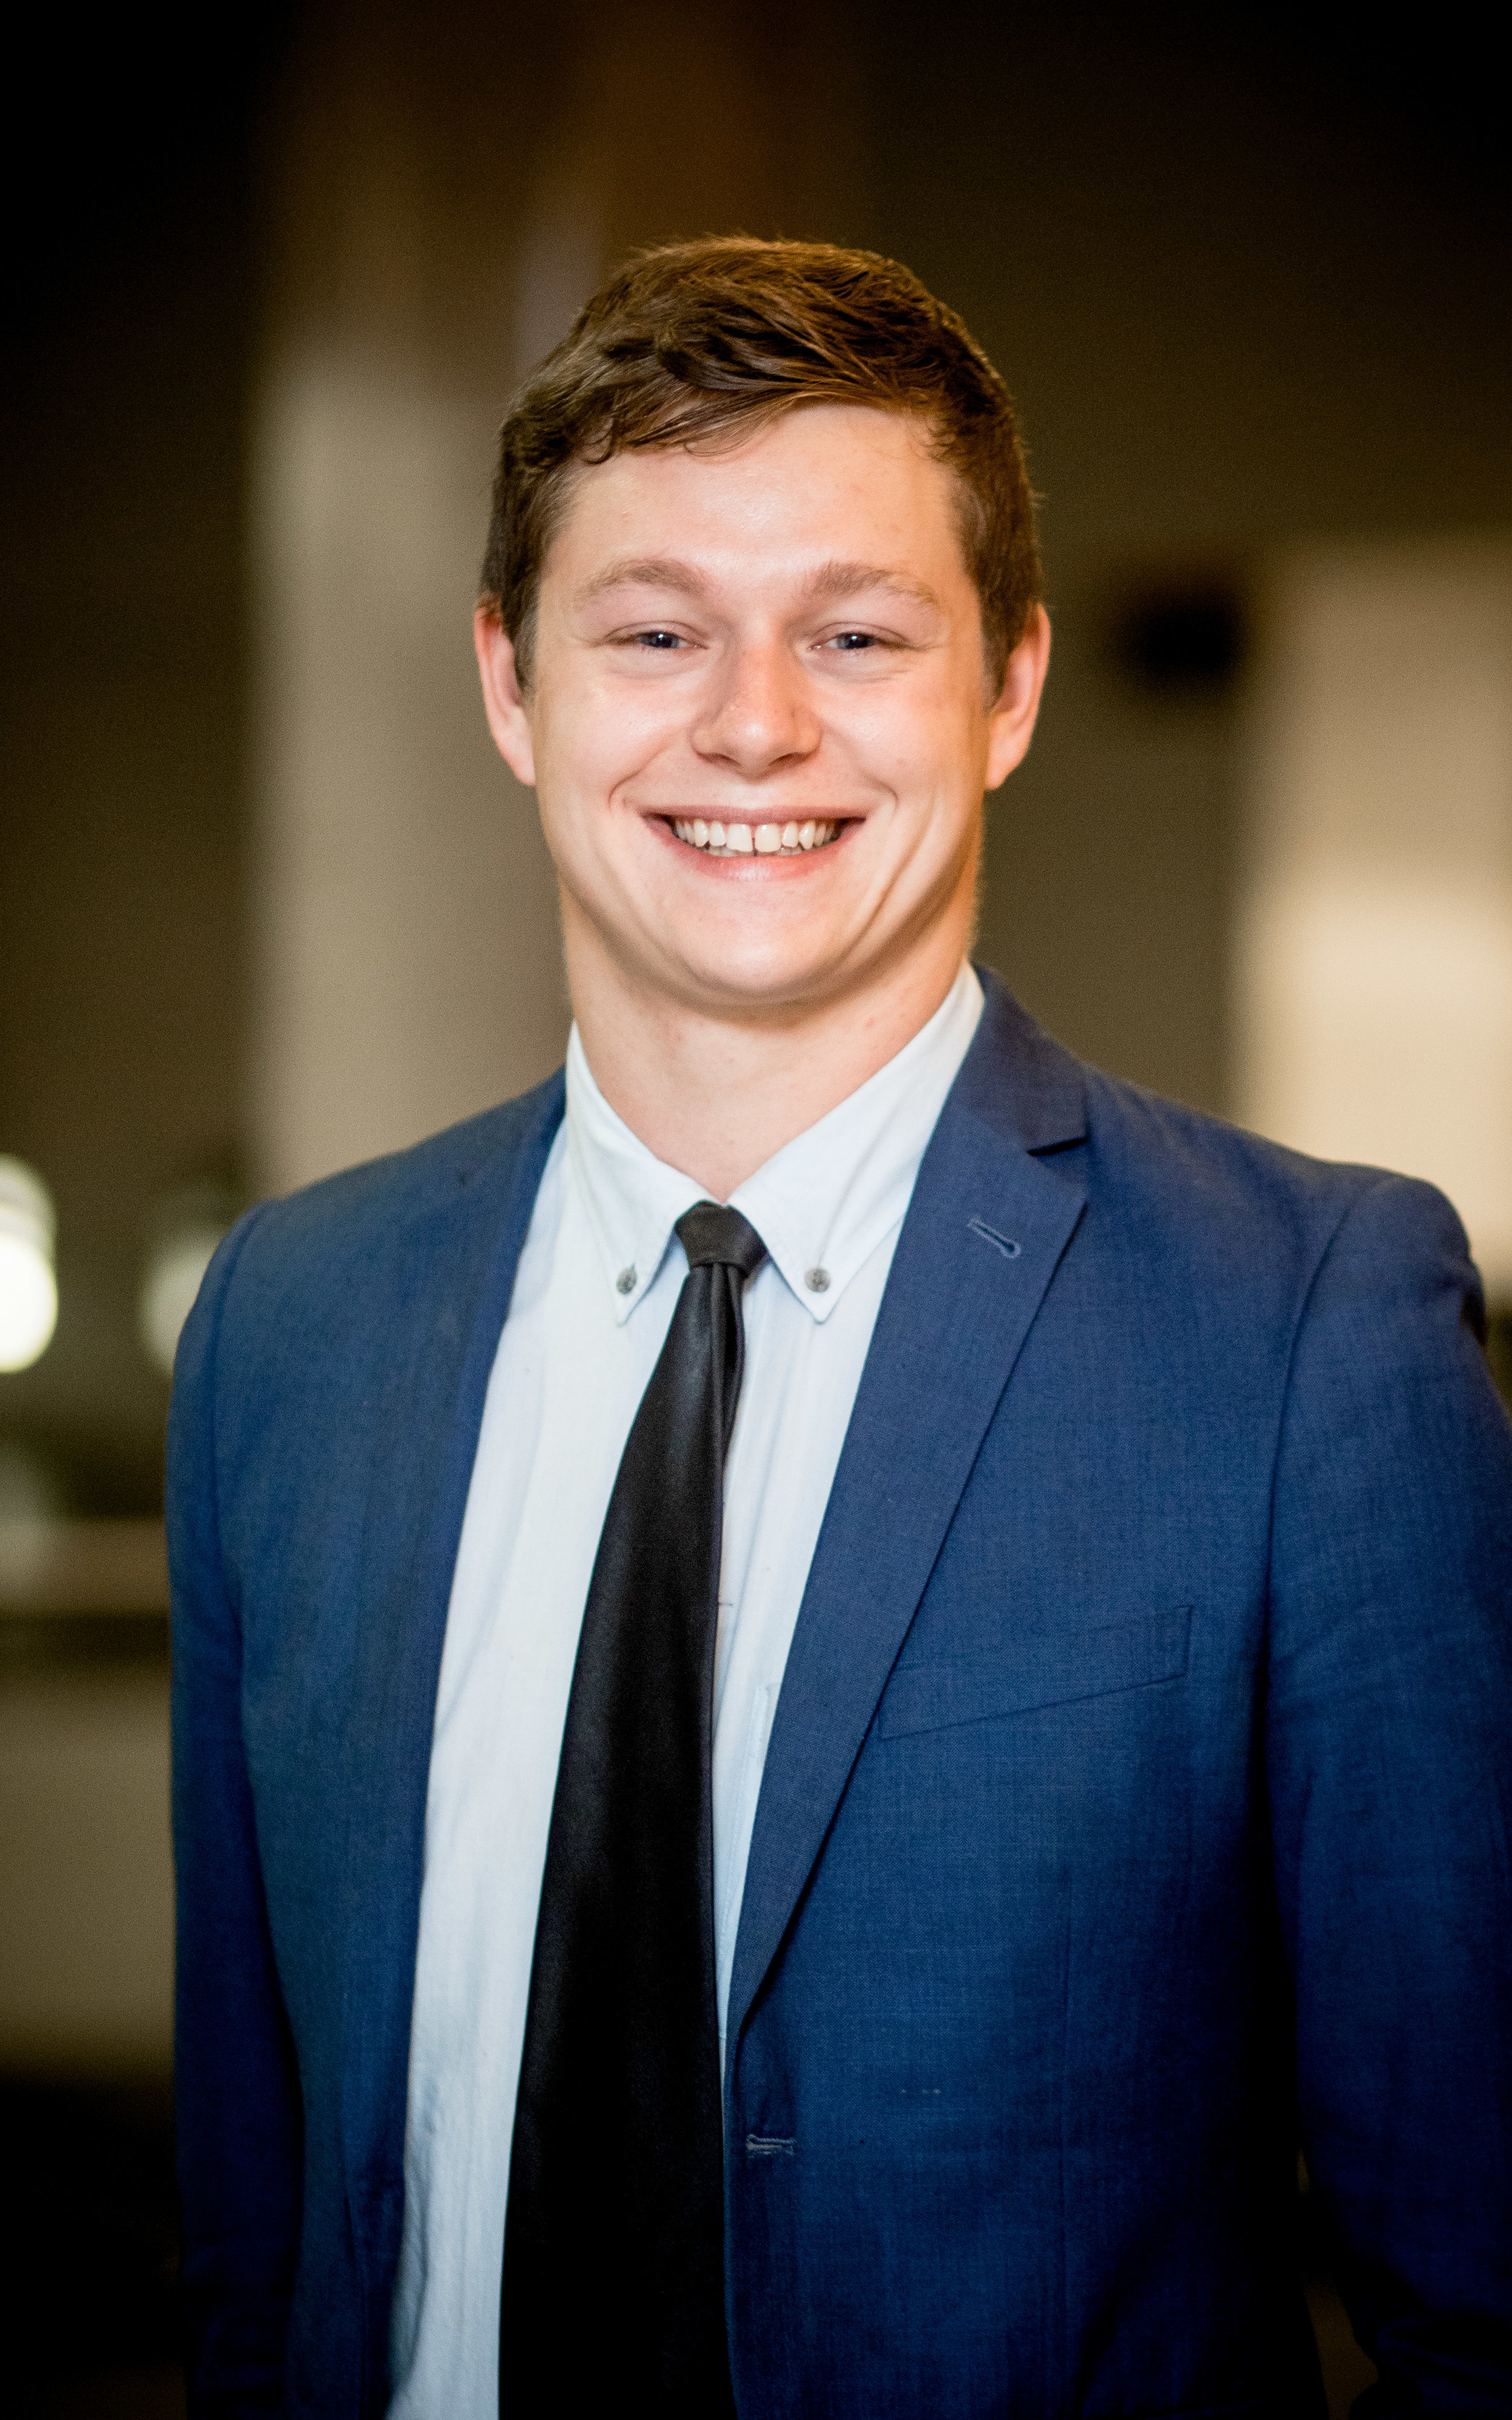 """VP FINANCE   Tom Whyte is a Fourth year Commerce student with a major in finance. He is passionate about self-development, constant forward progress, and assisting others to achieve their goals. After an exciting year on the Sprott DECA executive as Conference Co-Chair he will be returning as VP Finance.His goals for the year are to provide a transparent financial status and to ensure the club operates at maximum financial health.      """"Forget about the fast lane. If you really want to fly, just harness your power to your passion.""""    -Oprah Winfrey"""